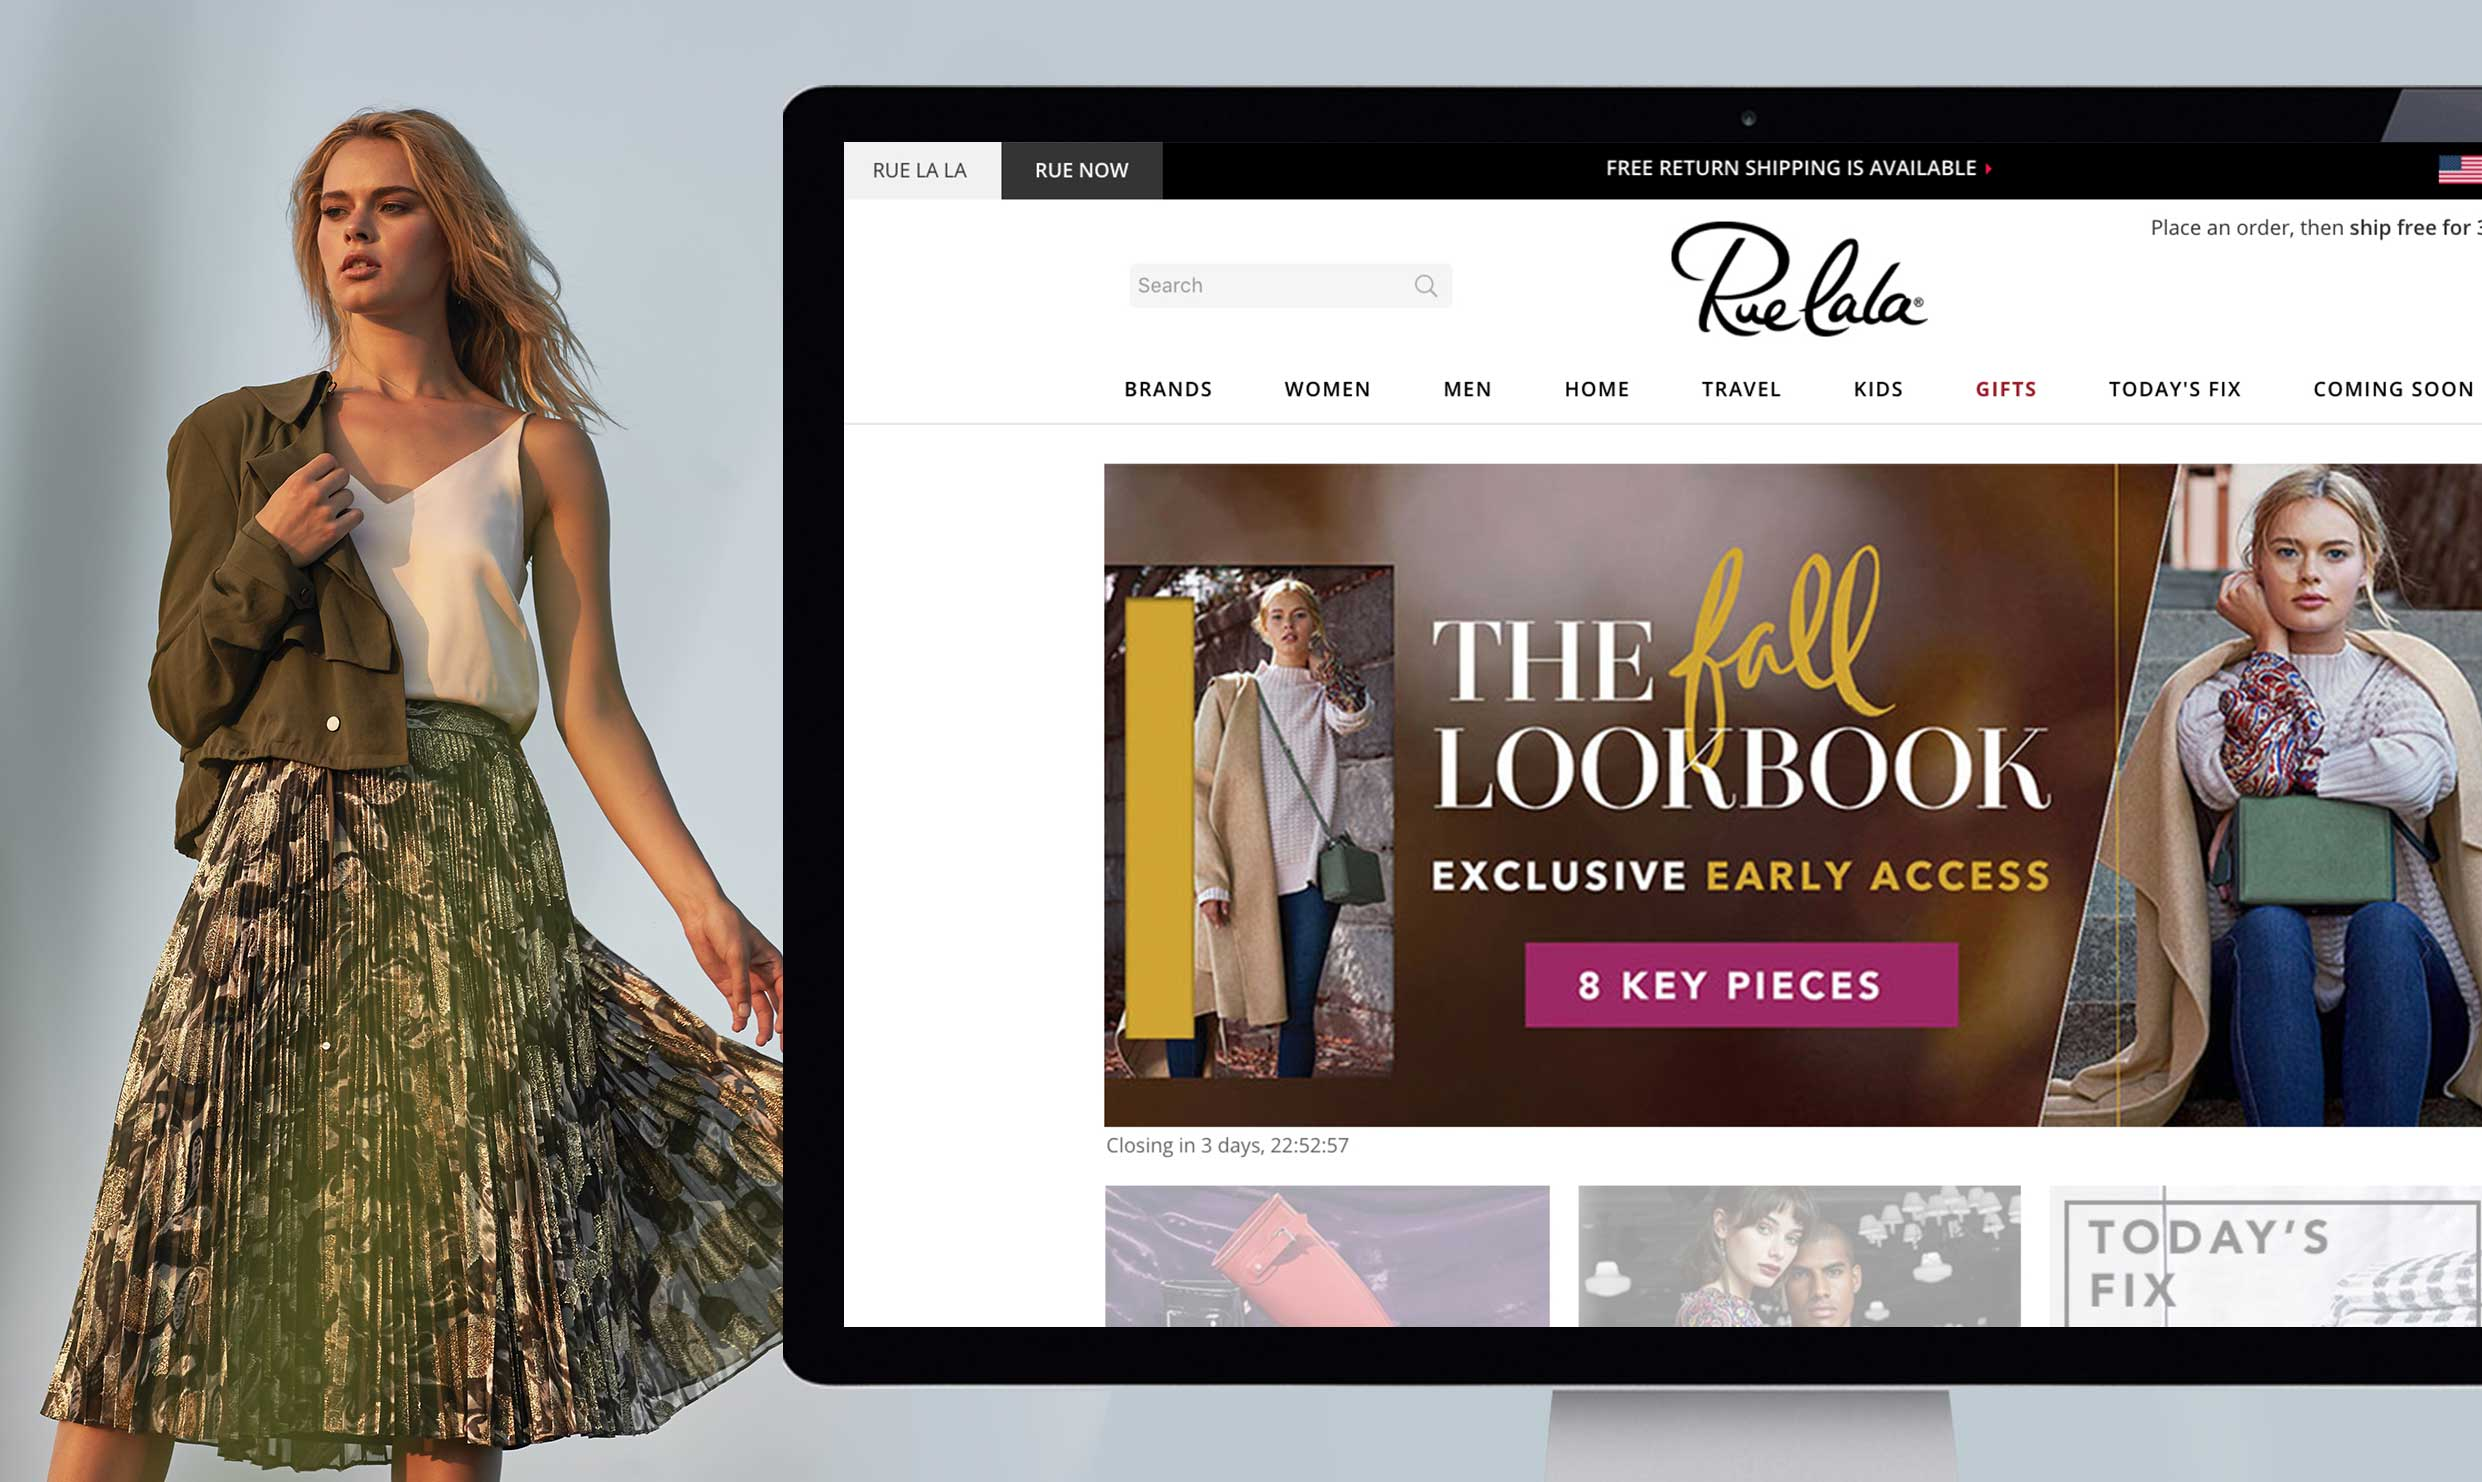 ruelala-lookbook-type-typeface-fashion-photography-photographer-magazine-print-booklet-fall-preview-4.jpg